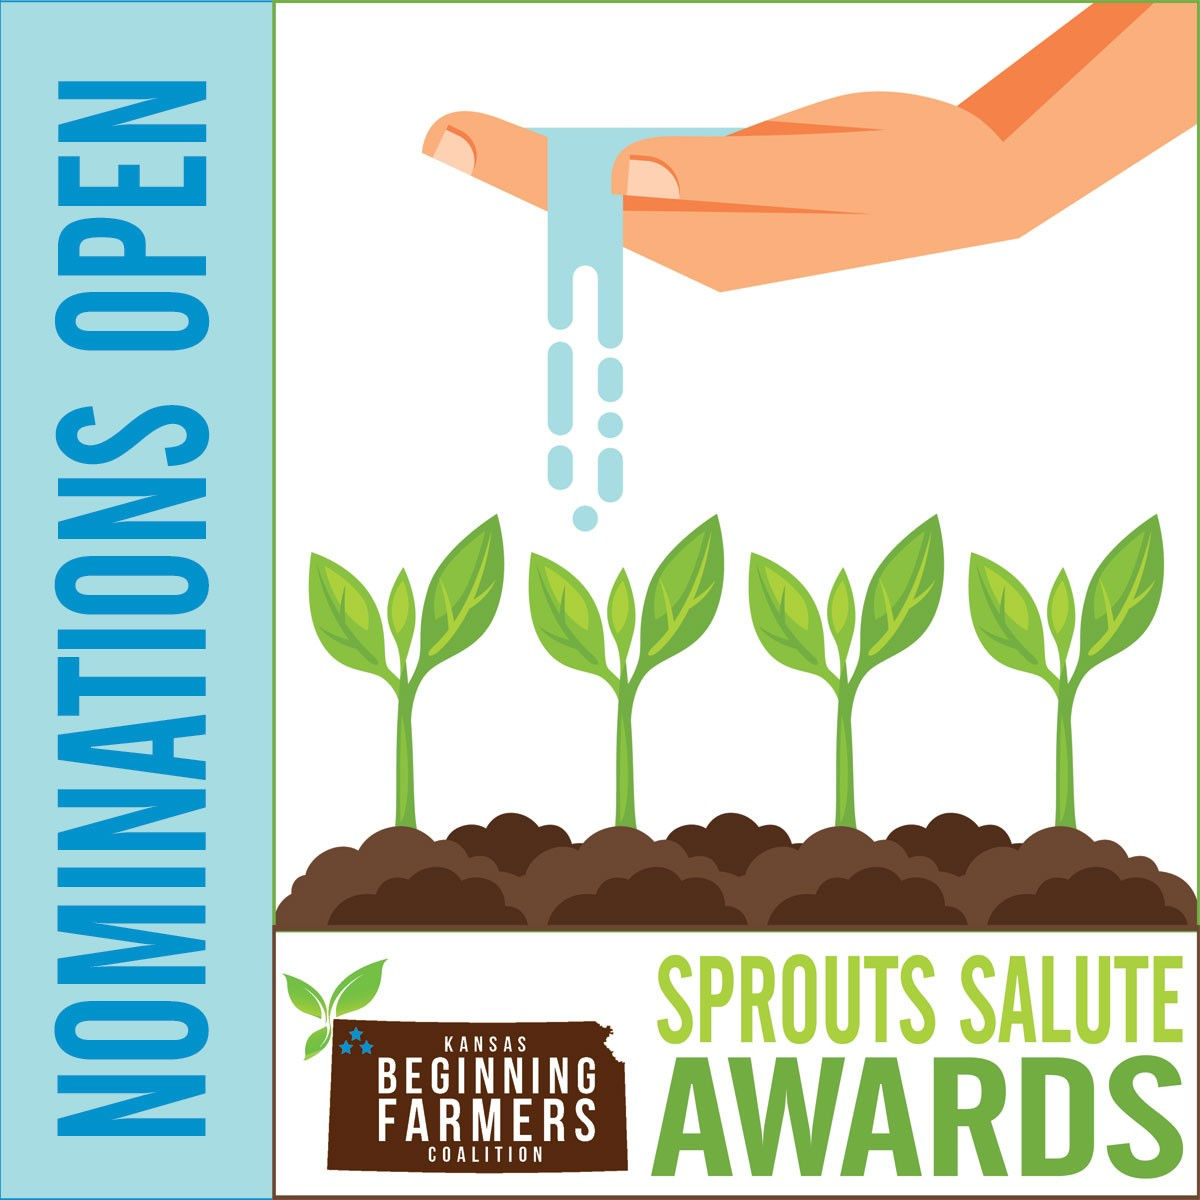 Sprouts Salute Award Nominations